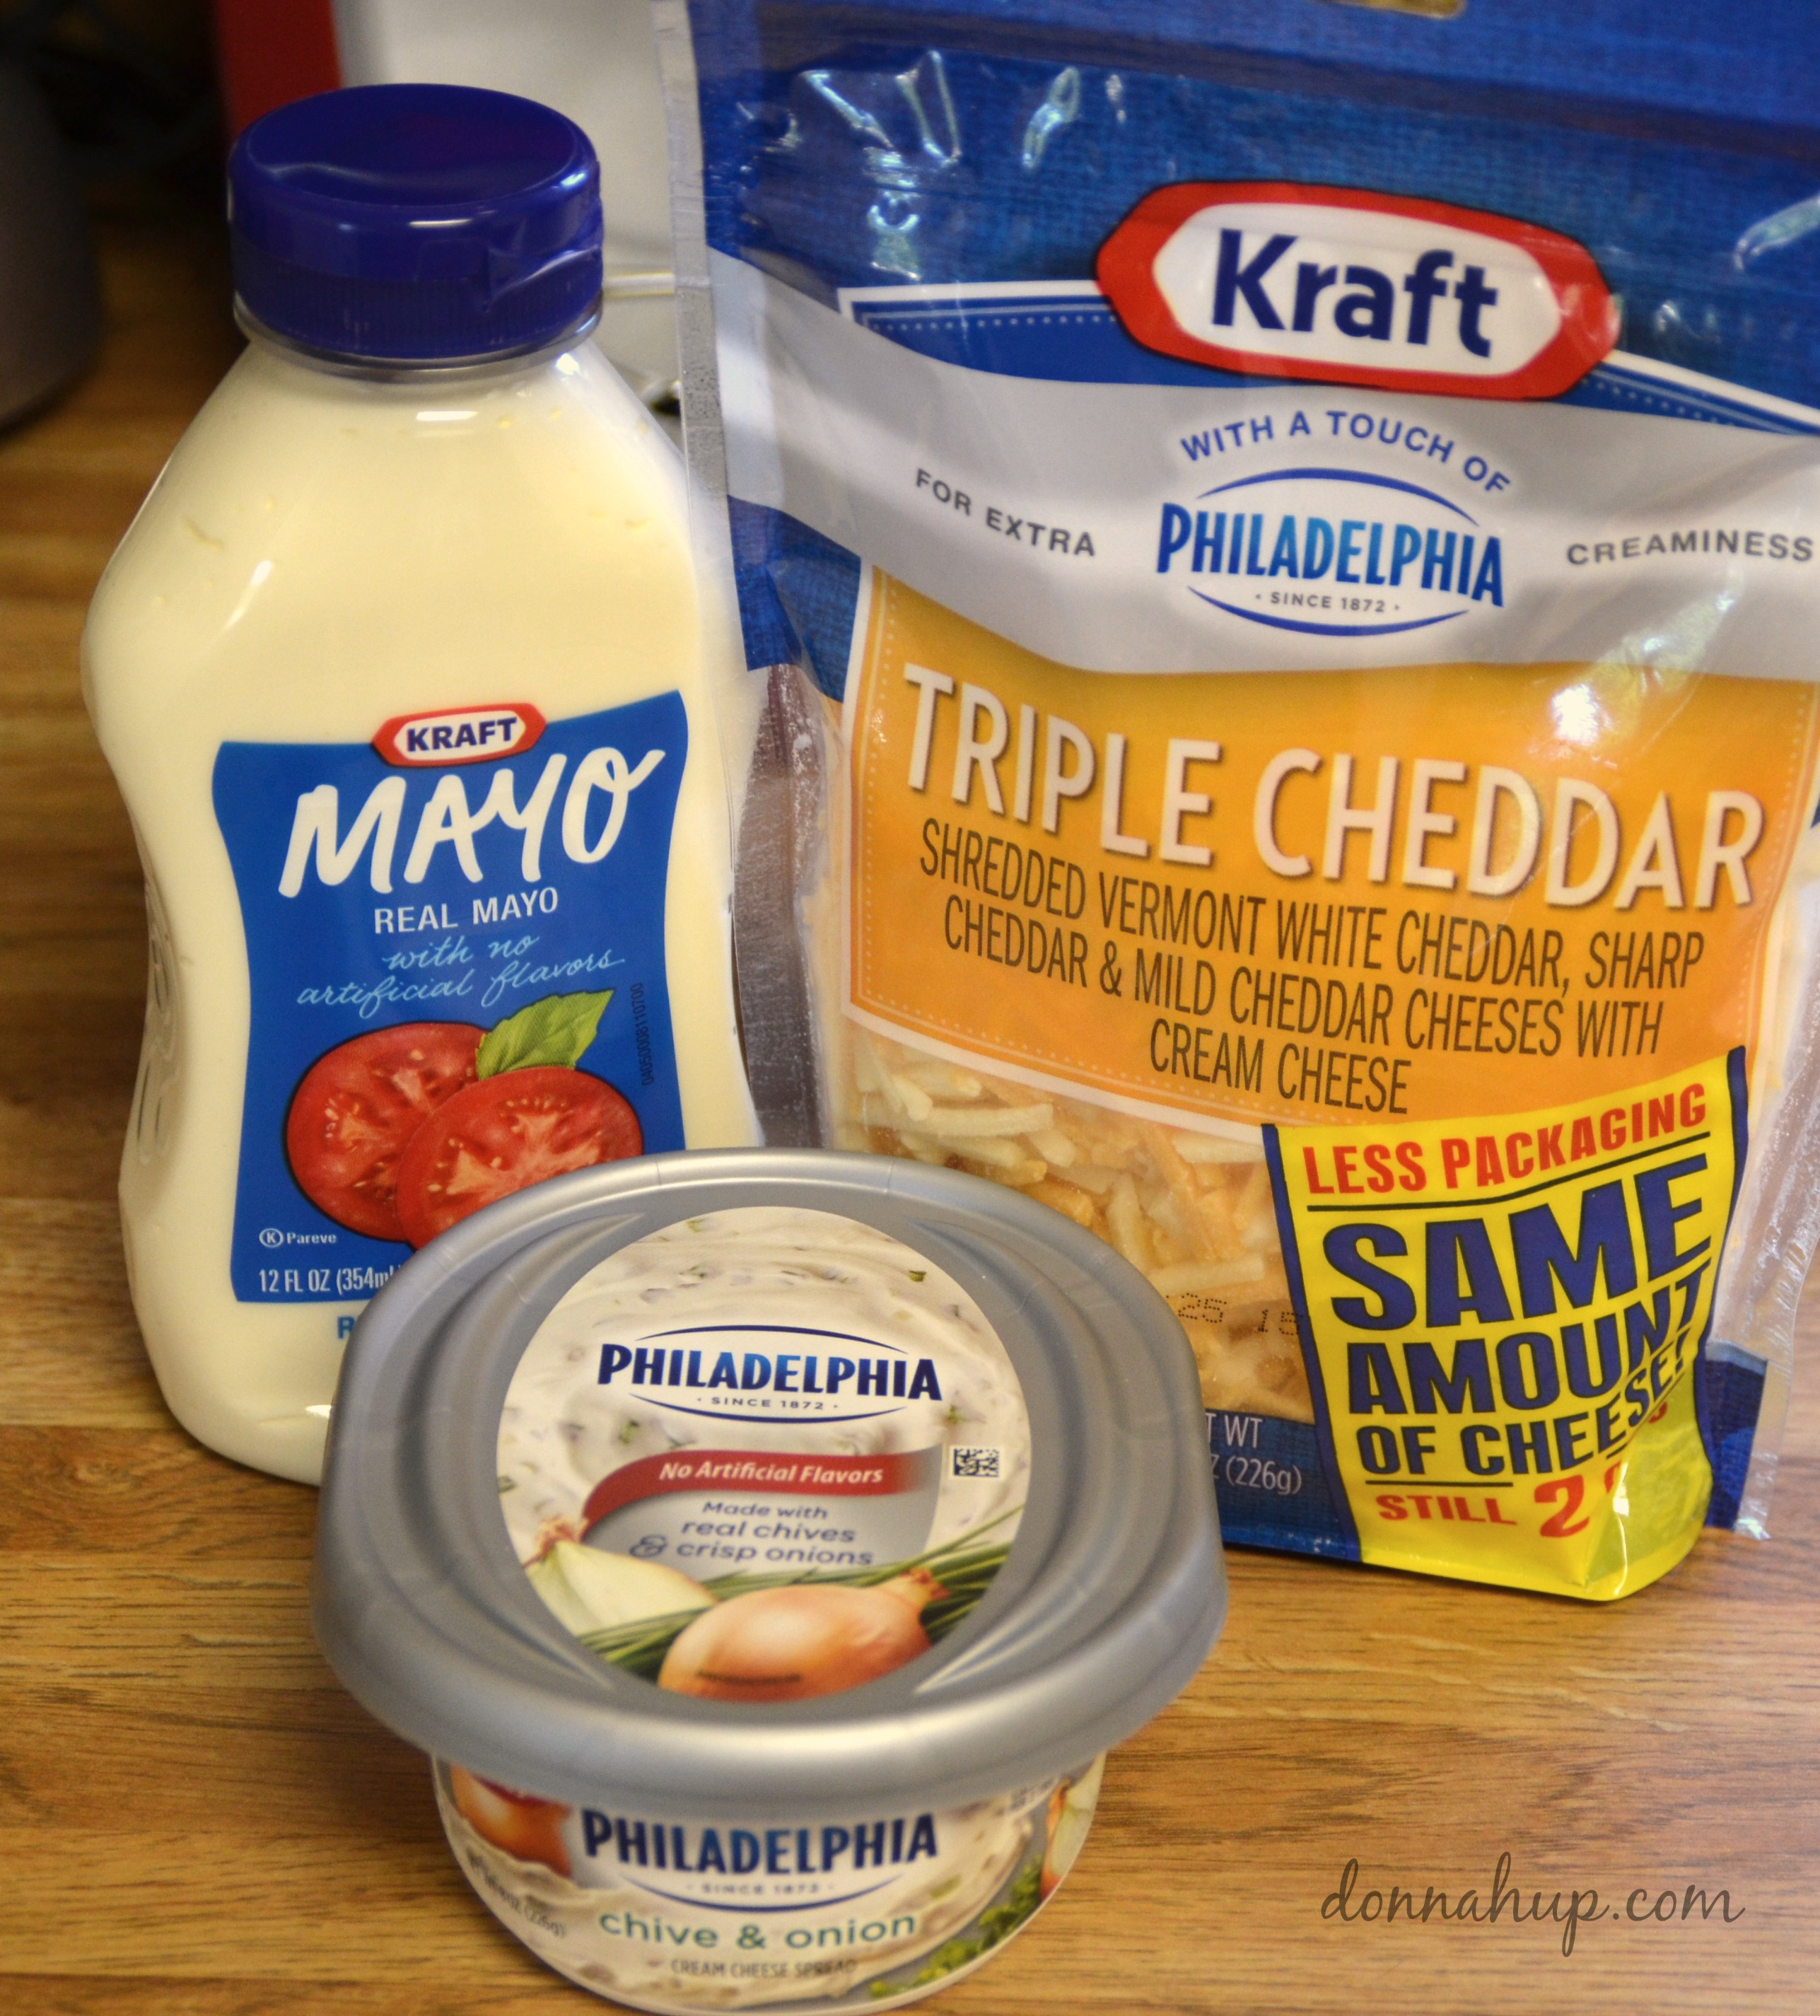 The Best Bacon And Cheese Dip Recipe together with Bacon Tater Breakfast Quiche as well Bacon Wrapped Cheese Hot Dogs in addition Y29ybiBkb2cgY2Fsb3JpZXM also James Foley Islamic State n 5698695. on oscar mayer bacon oven